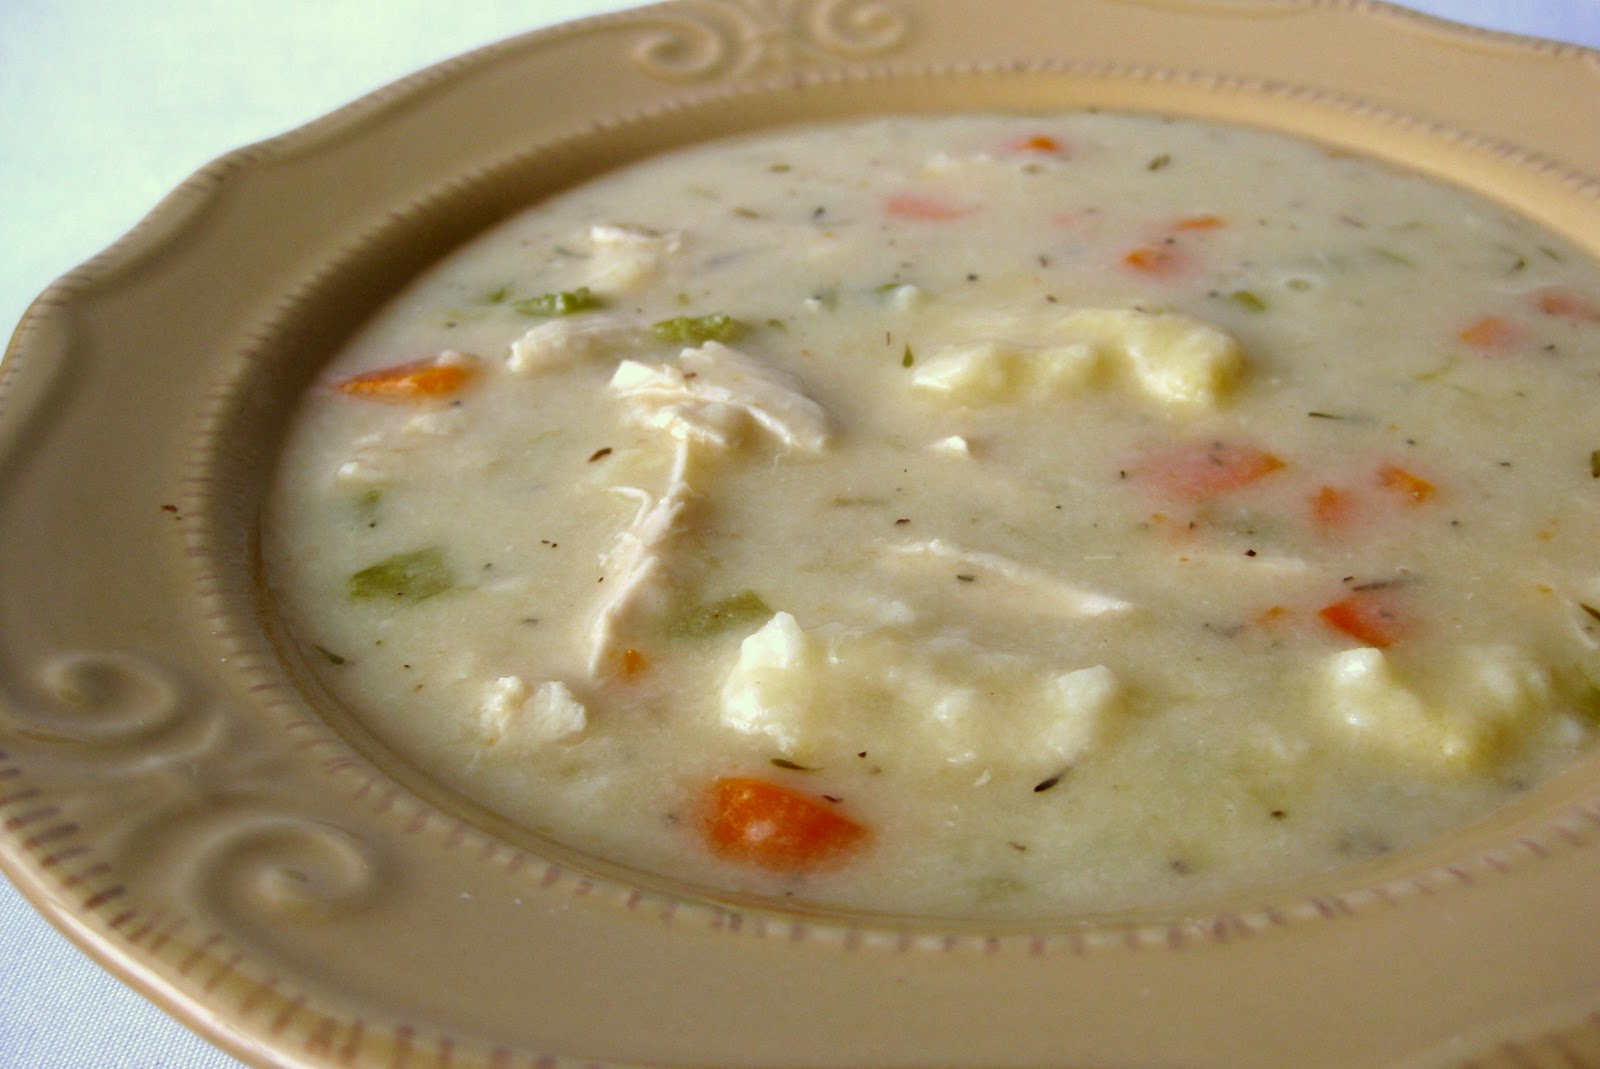 In the Long kitchen: Chicken and Vegetable Dumpling Soup